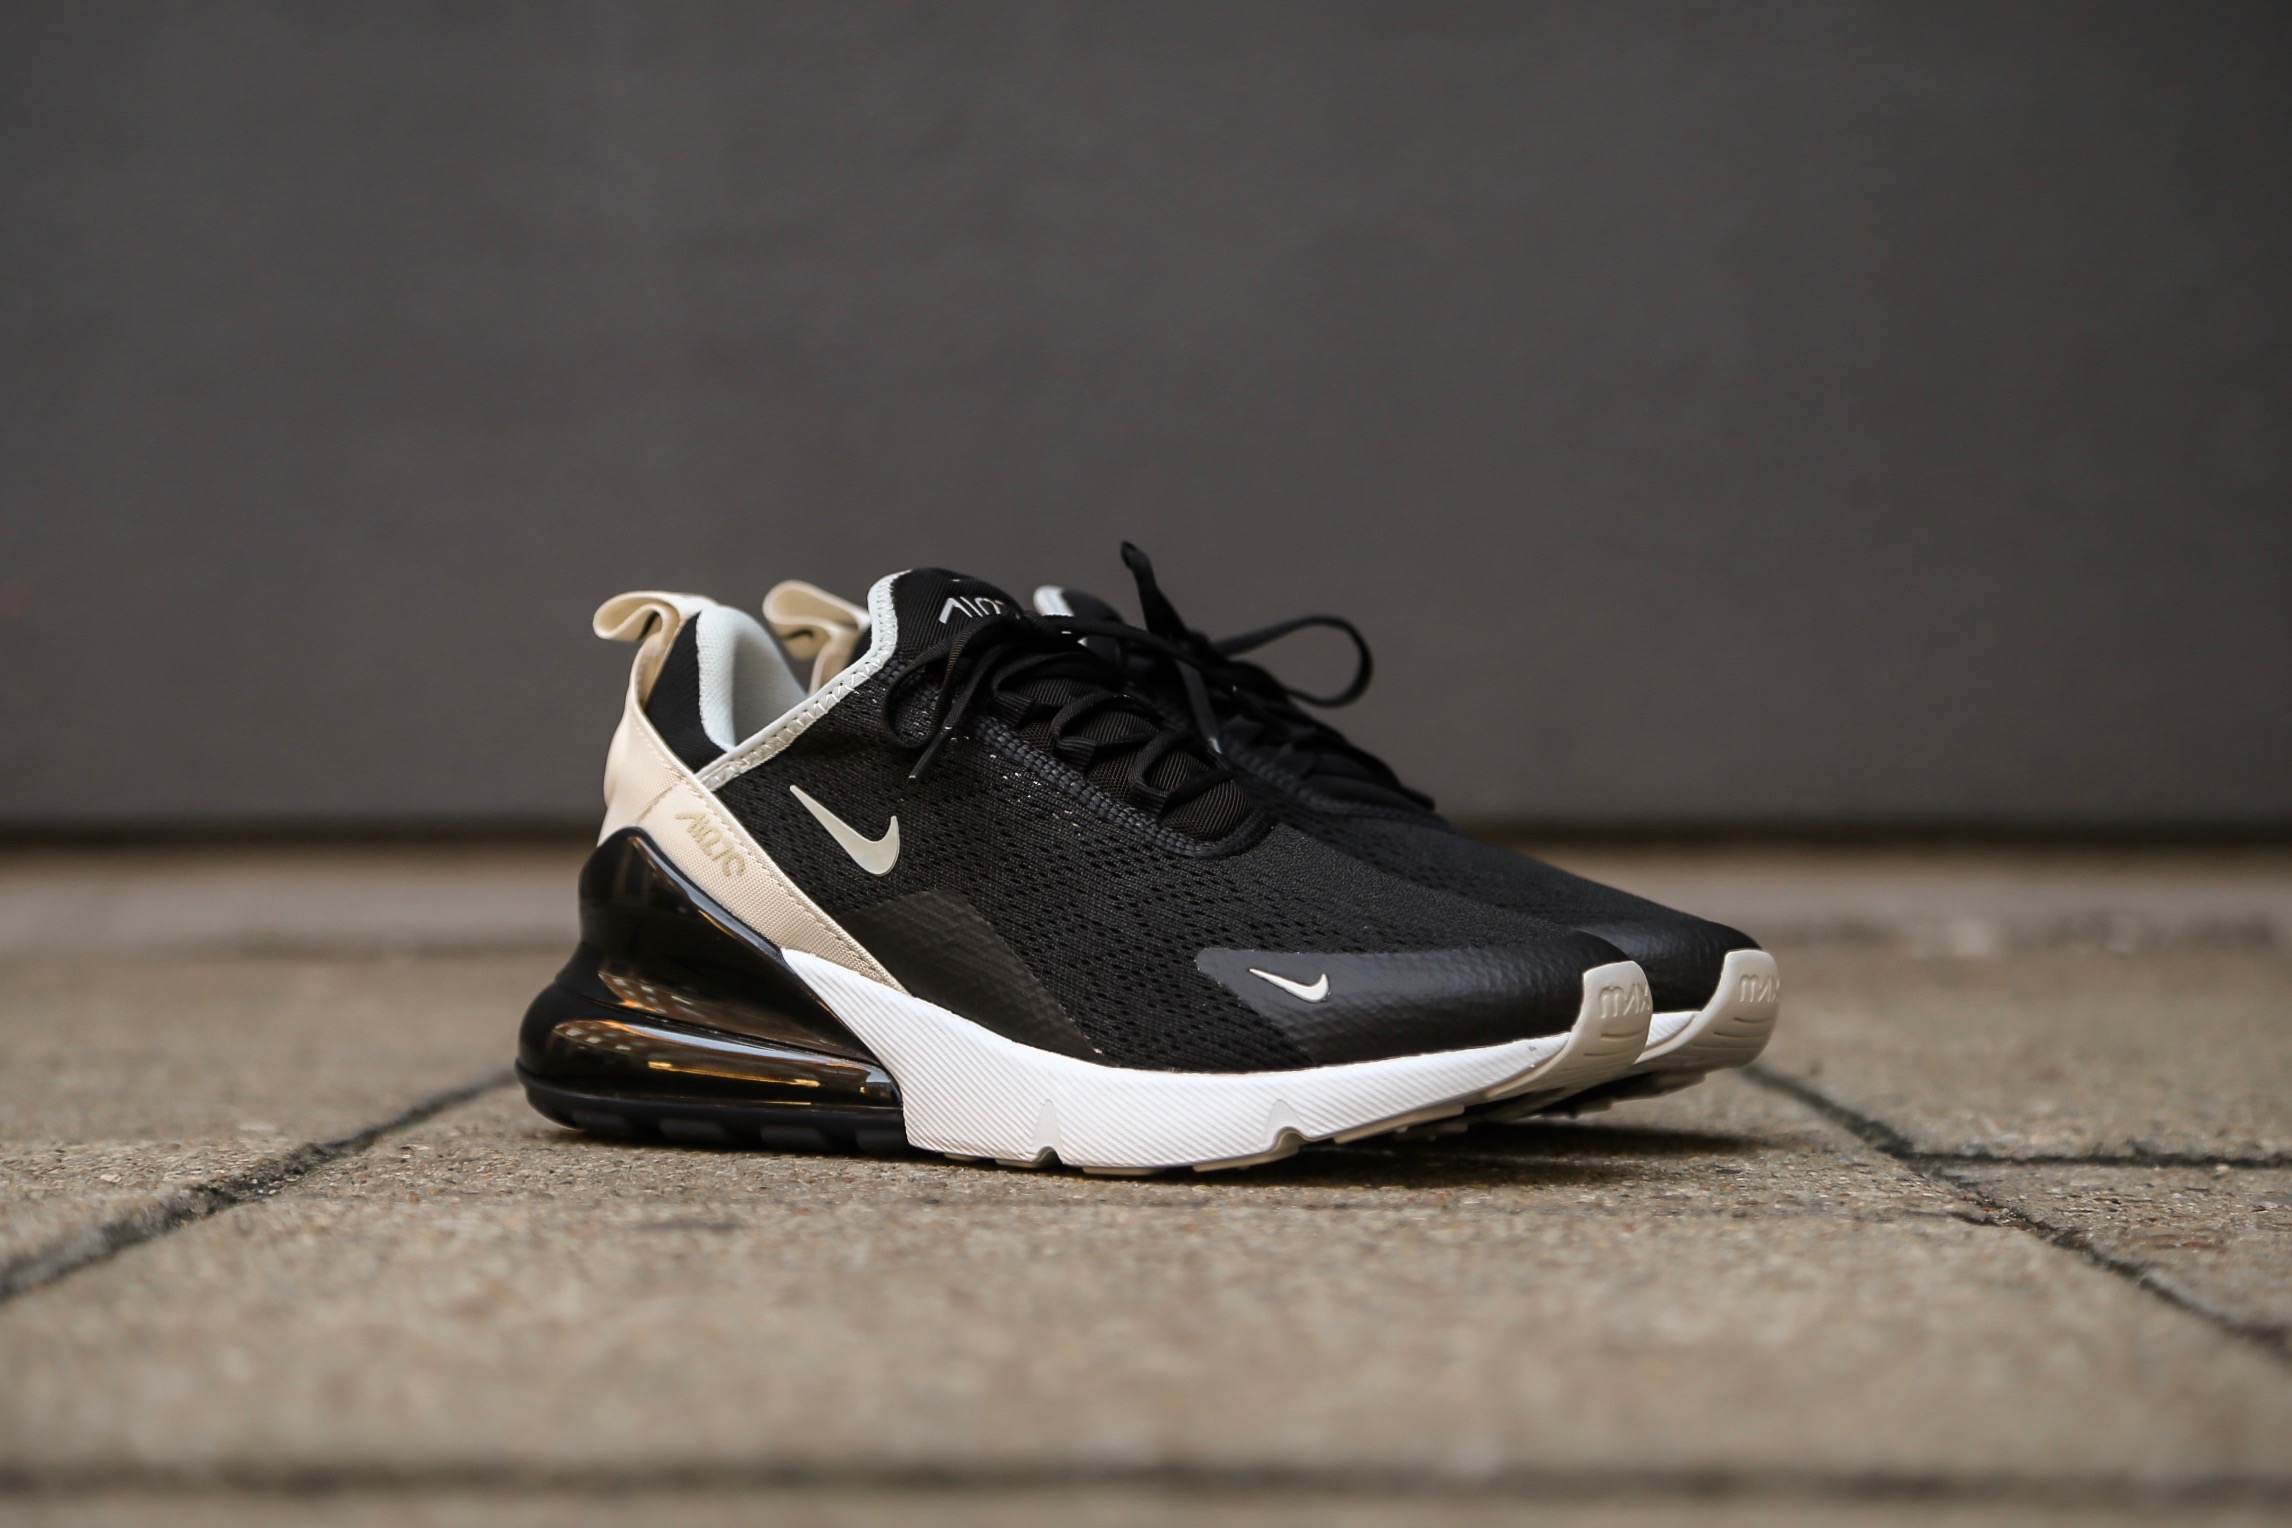 size 40 2cff4 b76c5 Nike W Air Max 270 - Black / Light Bone / Platinum Tint